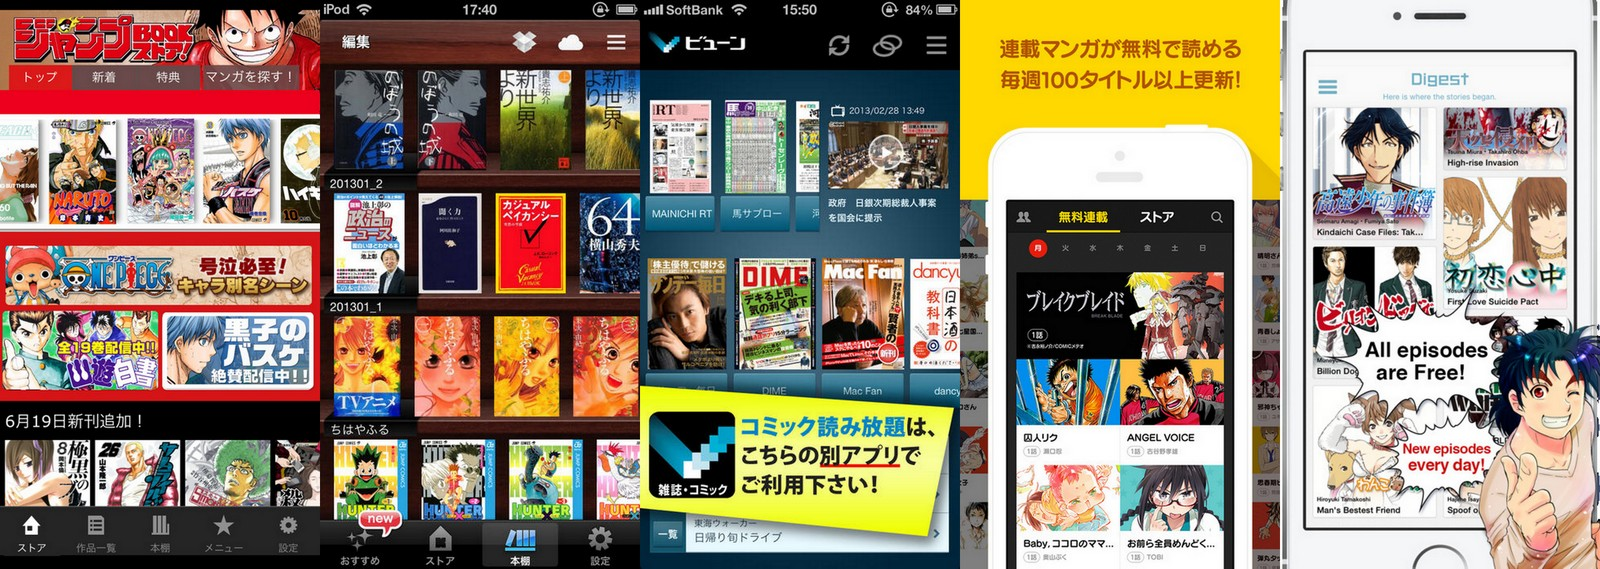 japan-major-app-bookstores-image